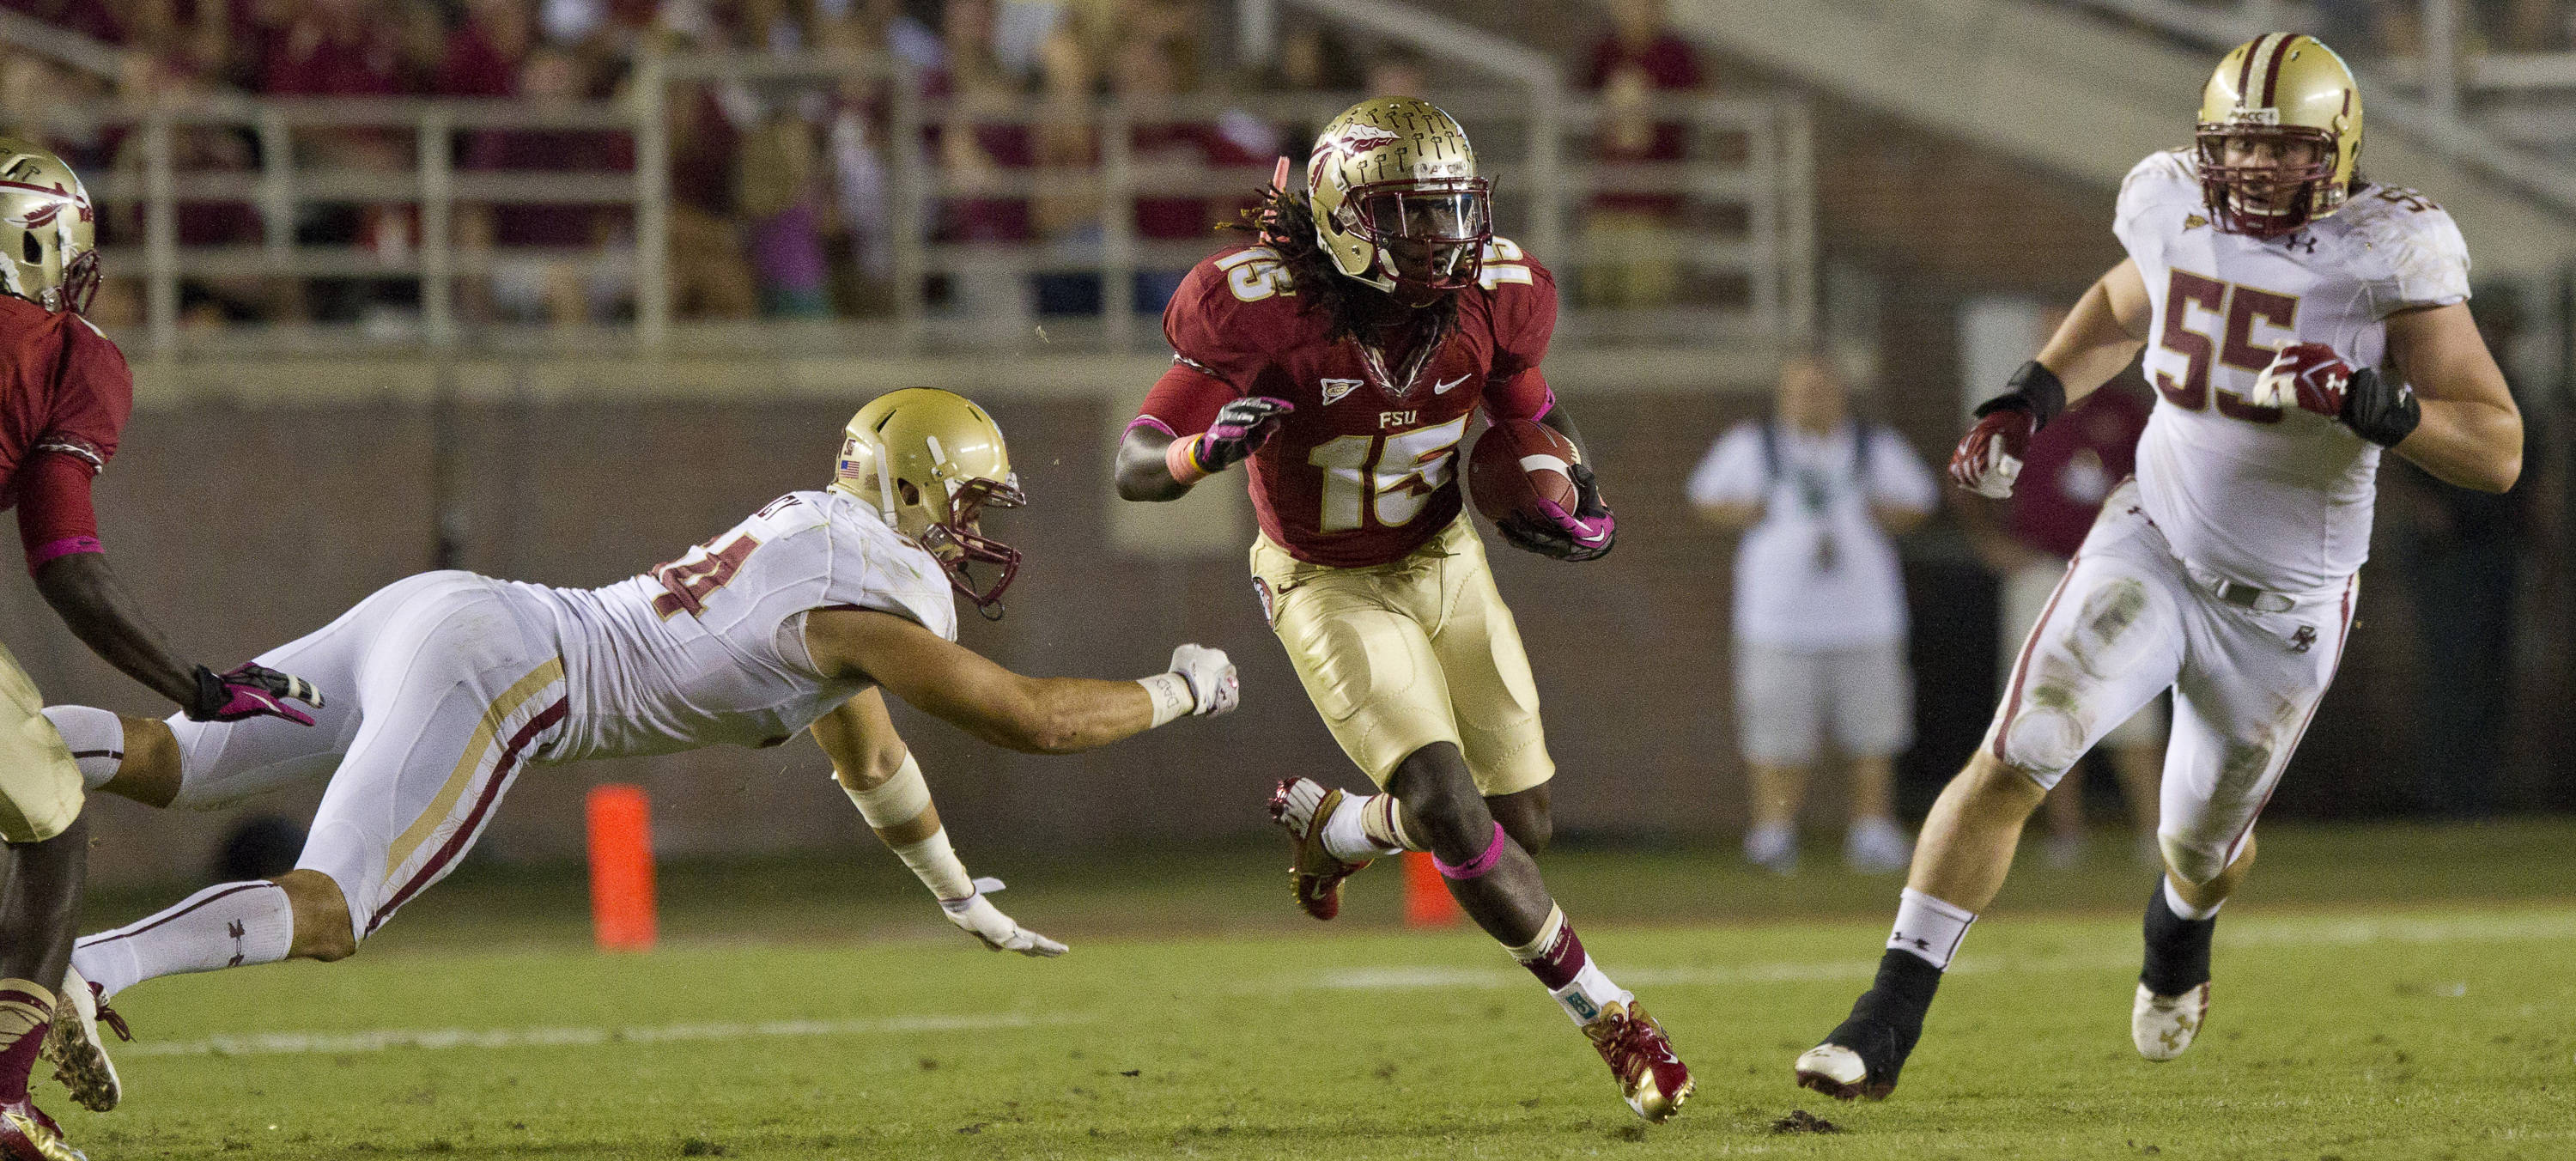 Greg Dent (15) carries the ball during the FSU vs Boston College football game on October 13, 2012 in Tallahassee, Fla.